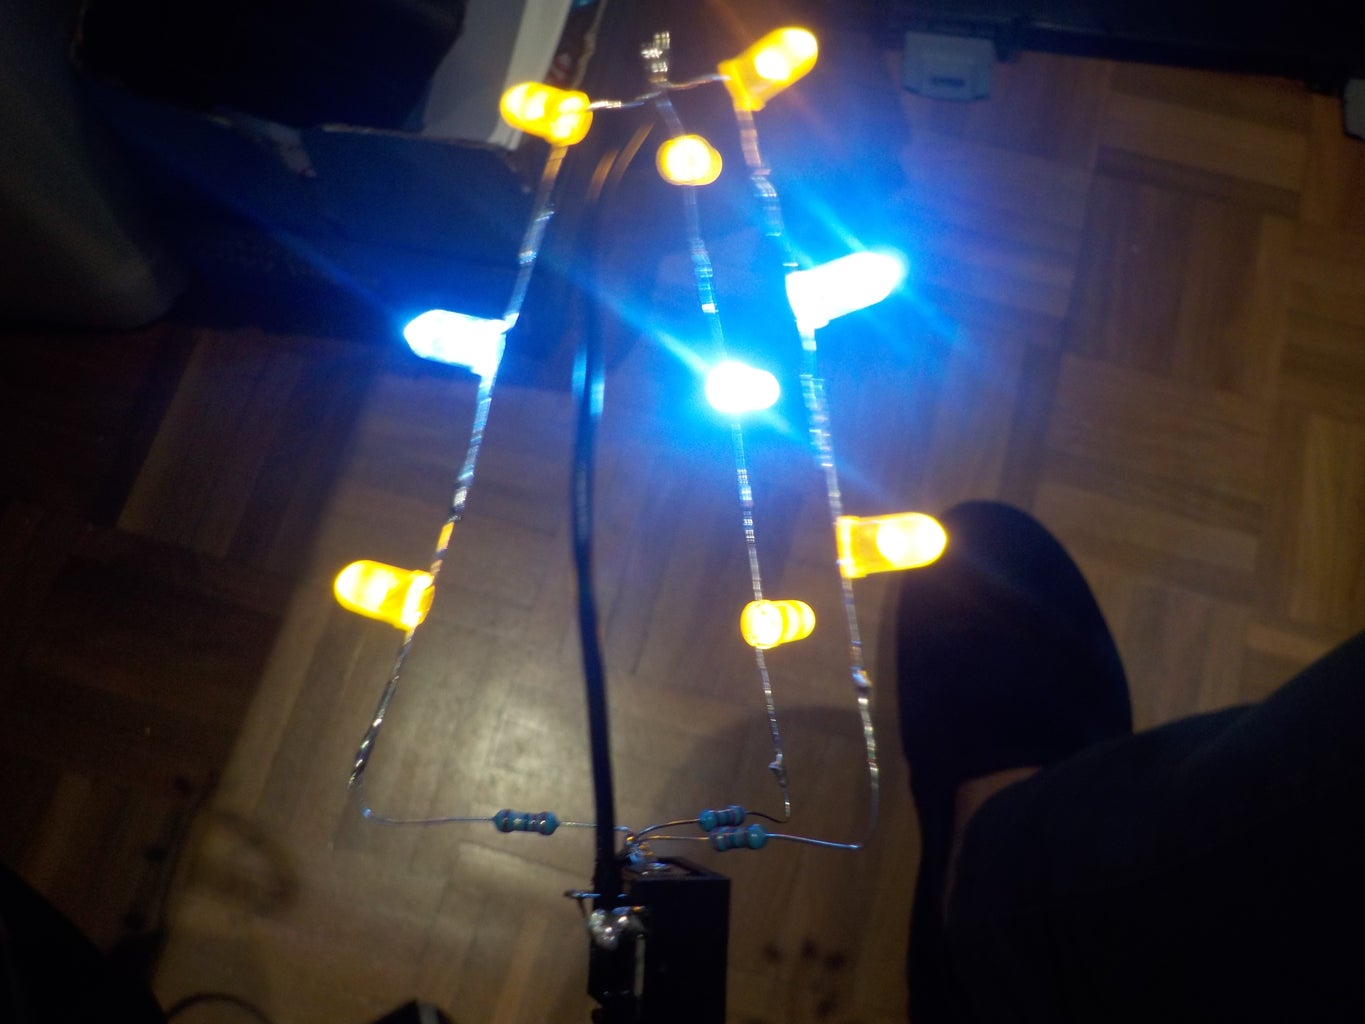 Solder the LEDs to the DC Jack